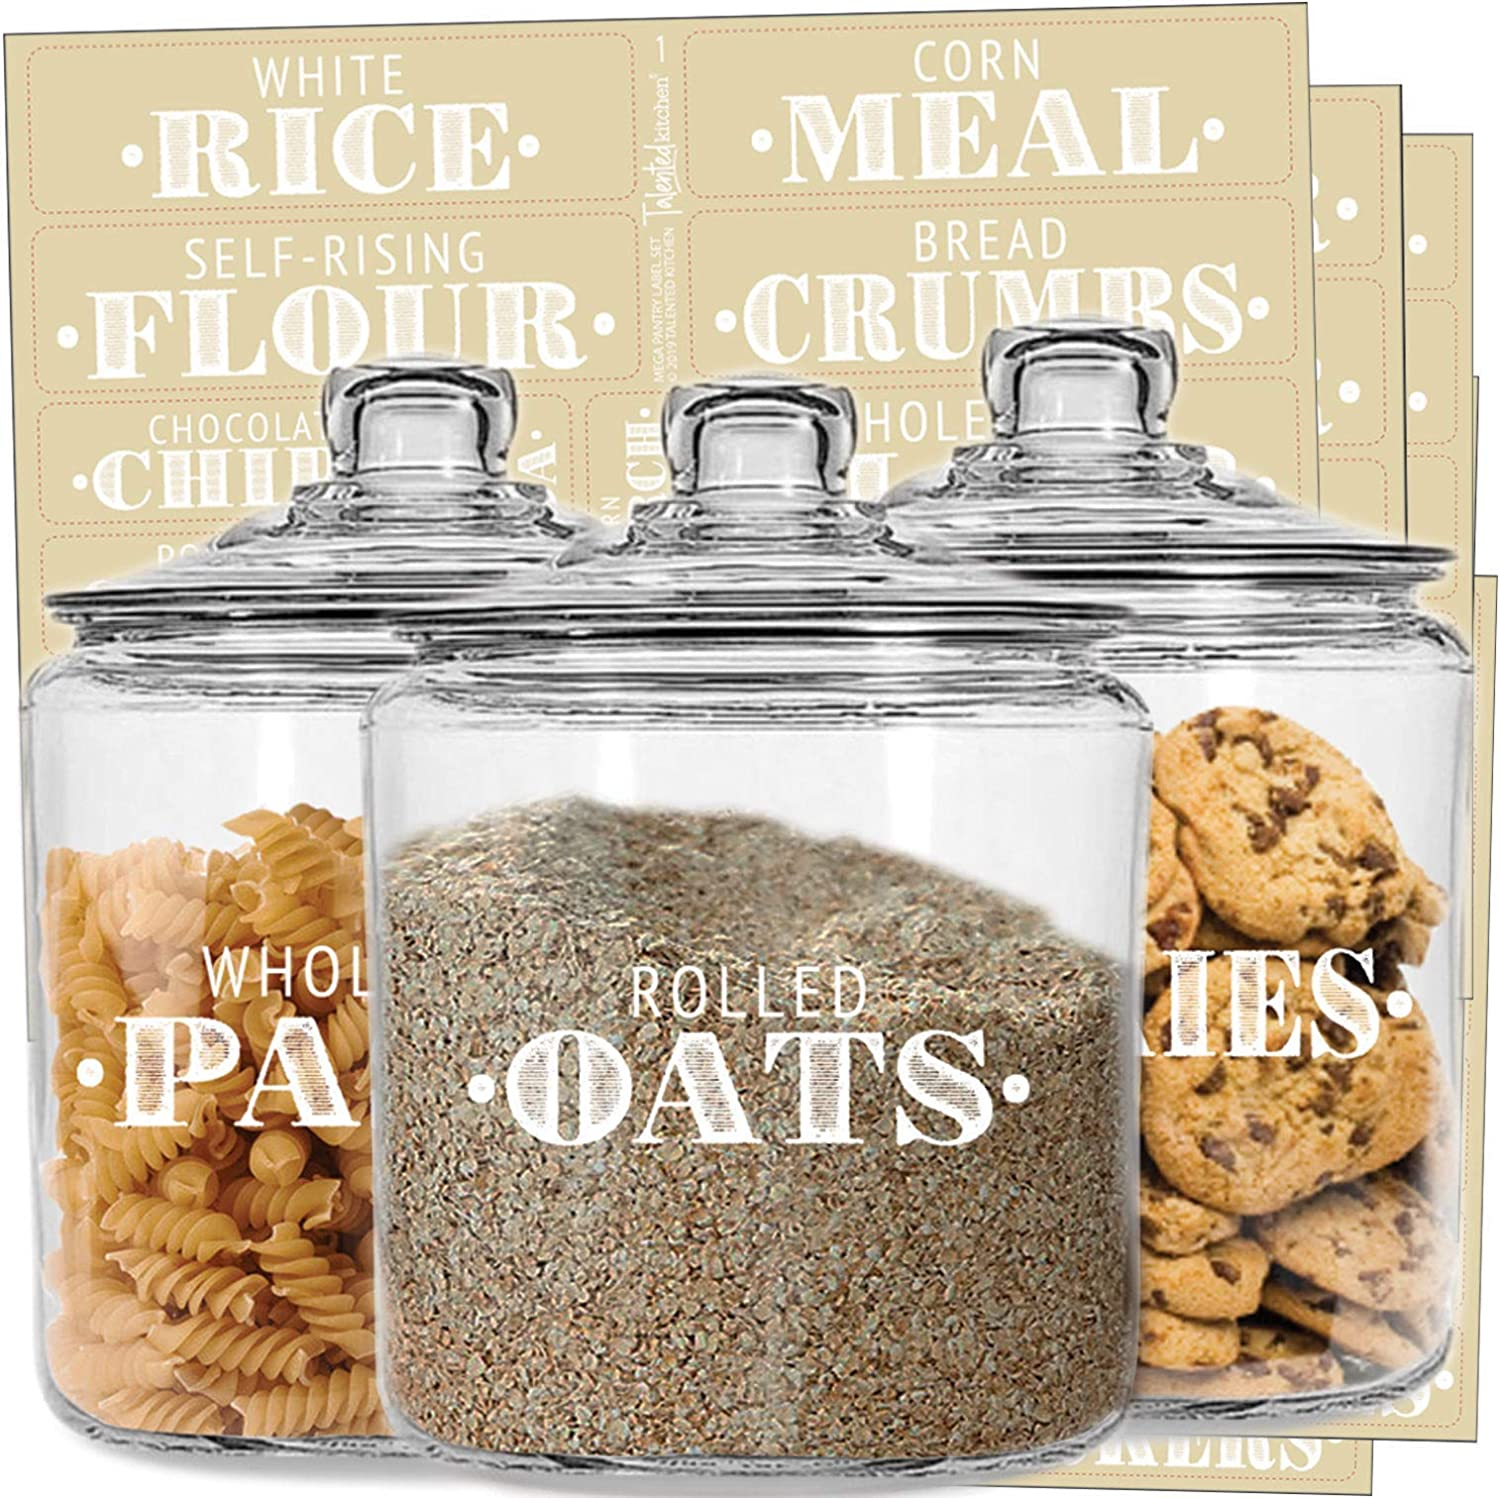 Farmhouse decor Kitchen labels Farmhouse canisters Labels for canisters-Pantry organization-kitchen decal Pantry labels Canister labels